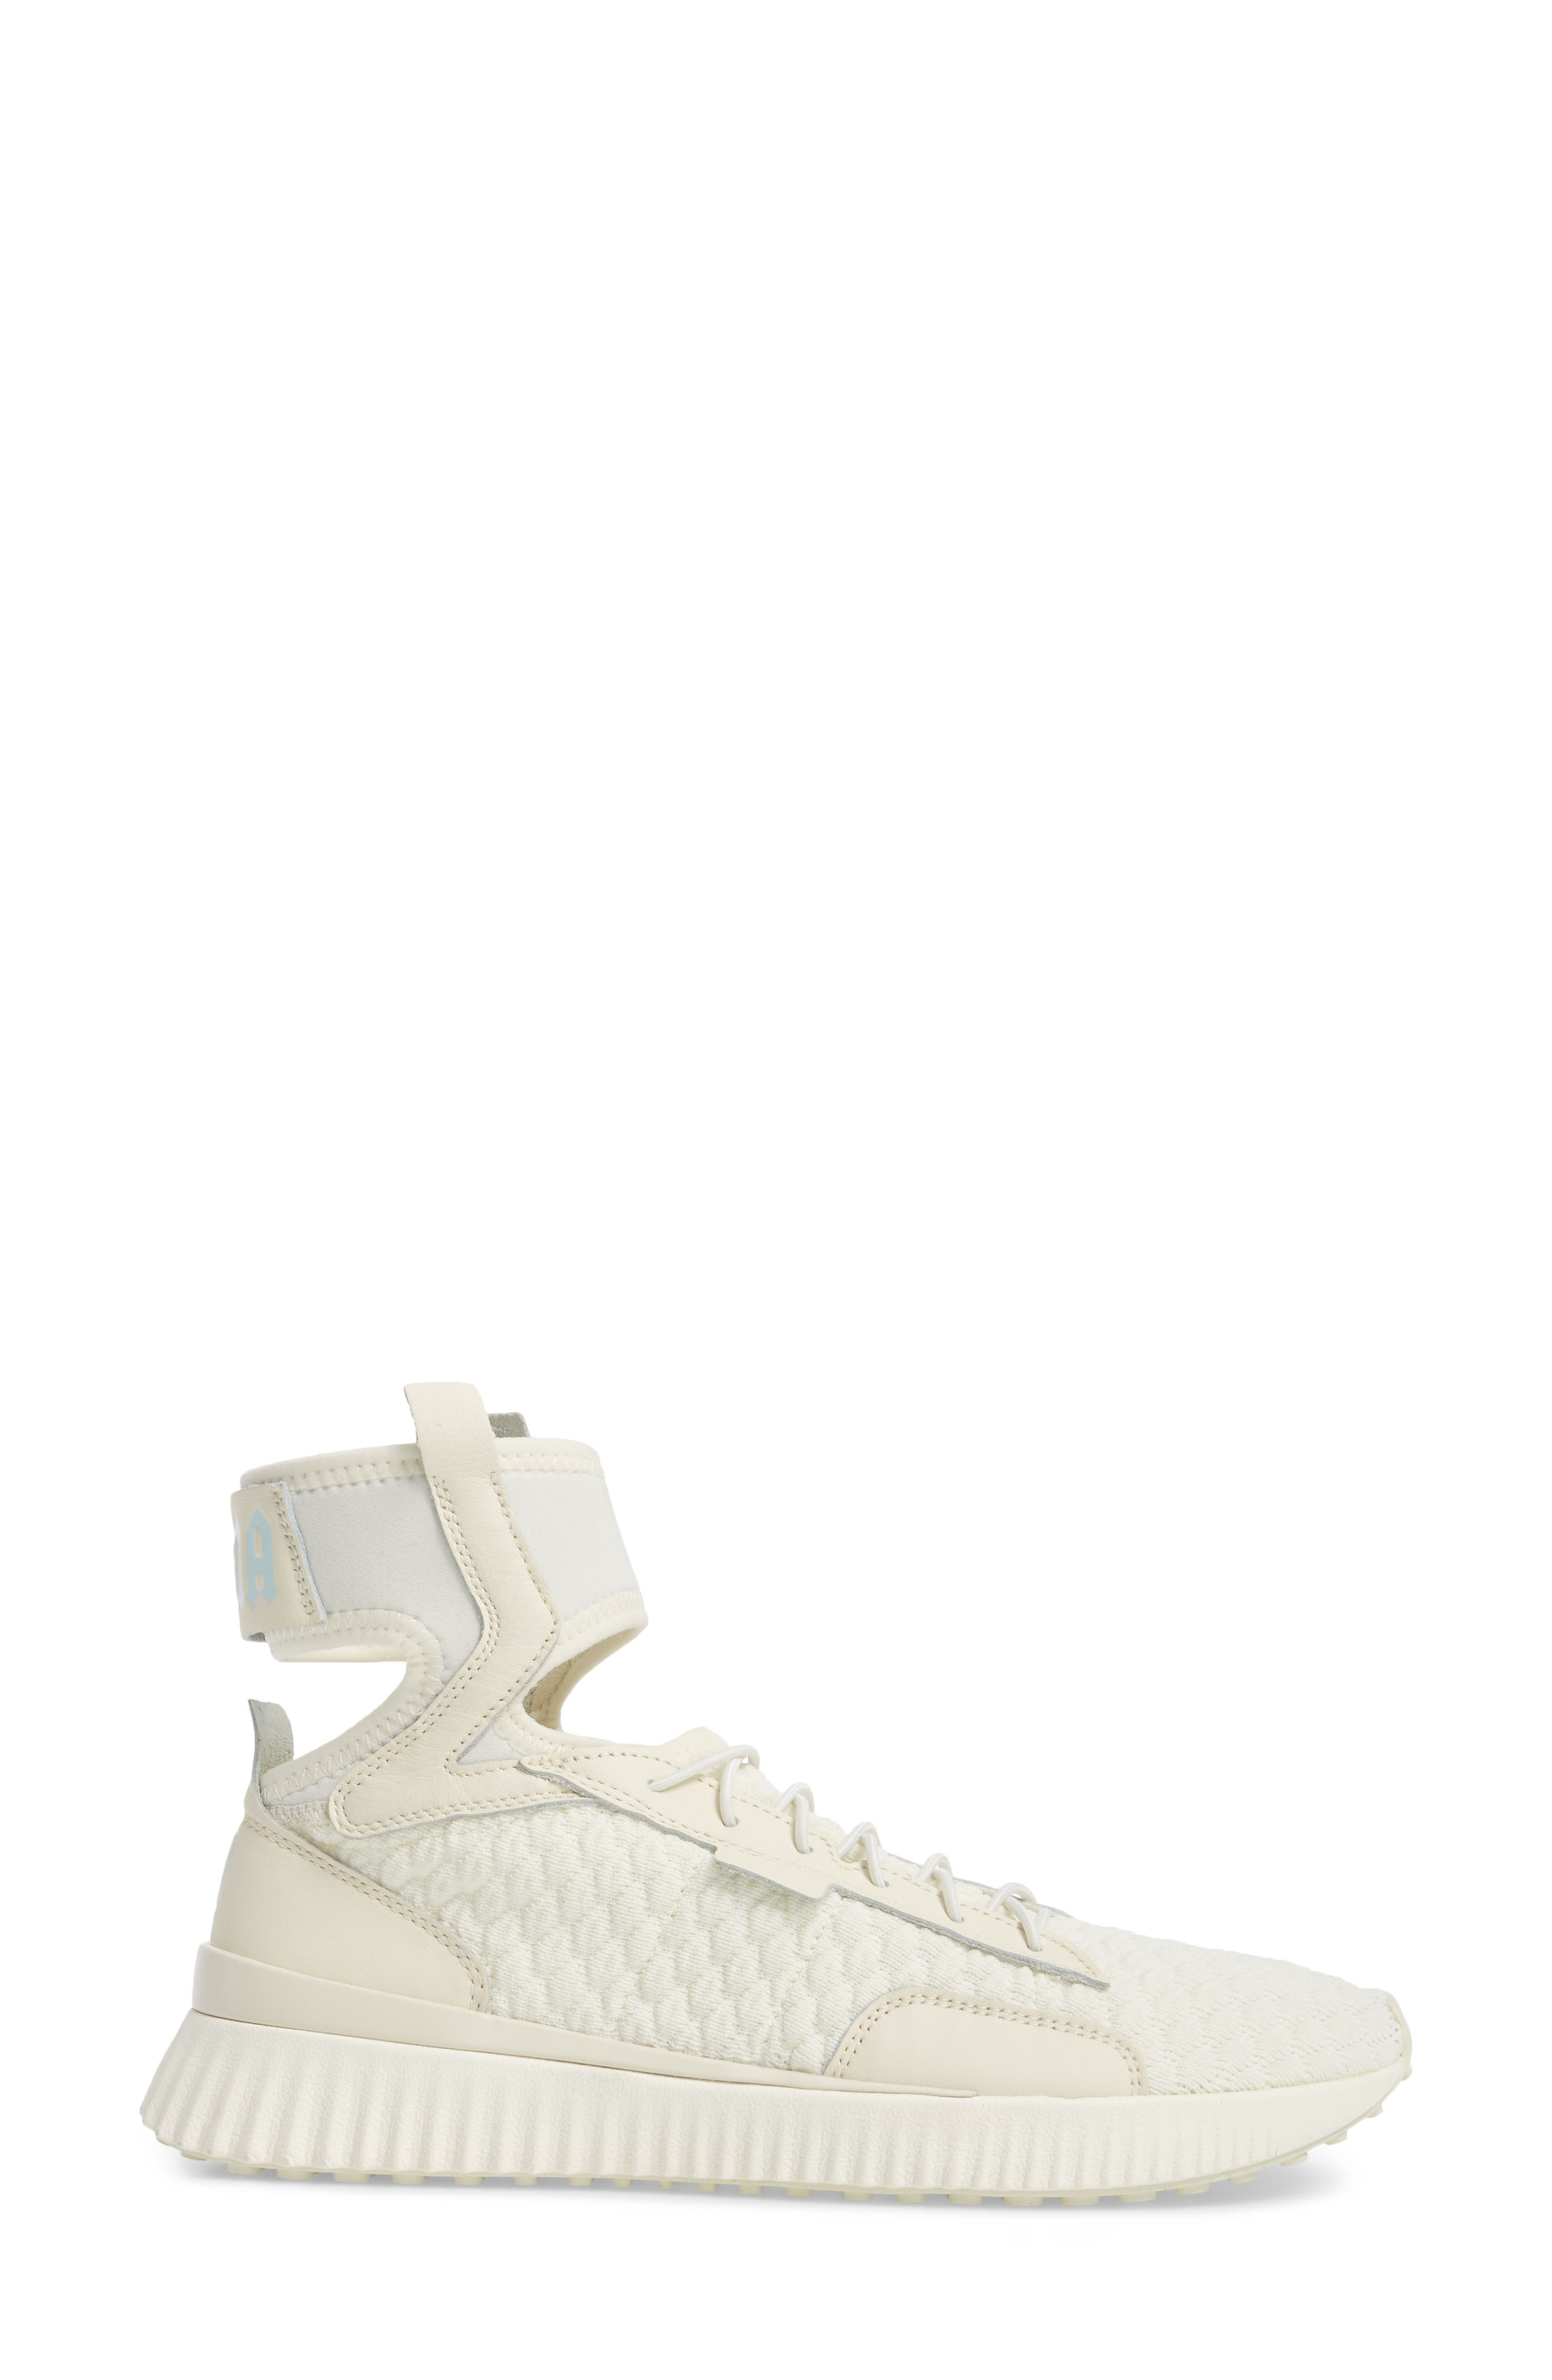 FENTY PUMA by Rihanna High Top Sneaker,                             Alternate thumbnail 3, color,                             Vanilla Ice/ Sterling Blue